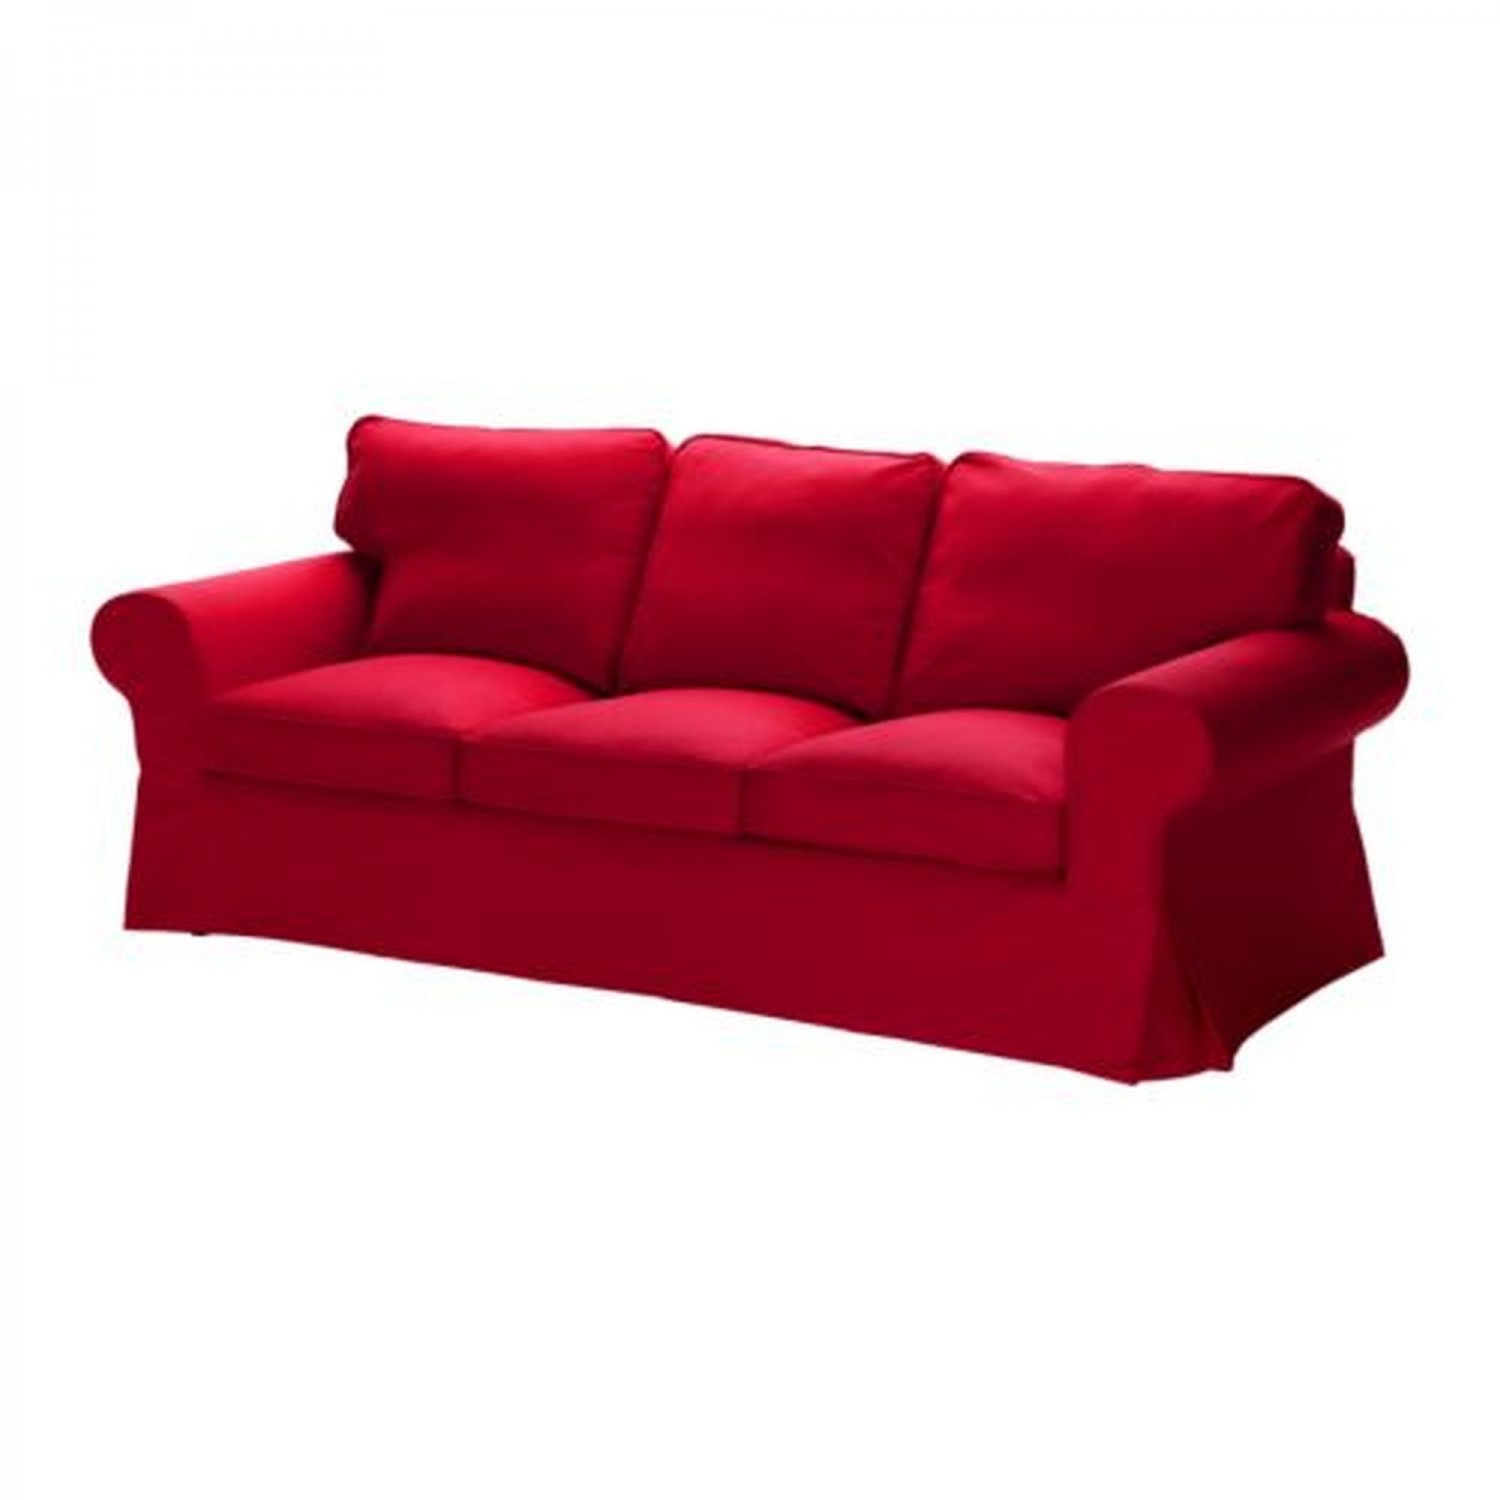 IKEA EKTORP 3 Seat Sofa SLIPCOVER Cover IDEMO RED